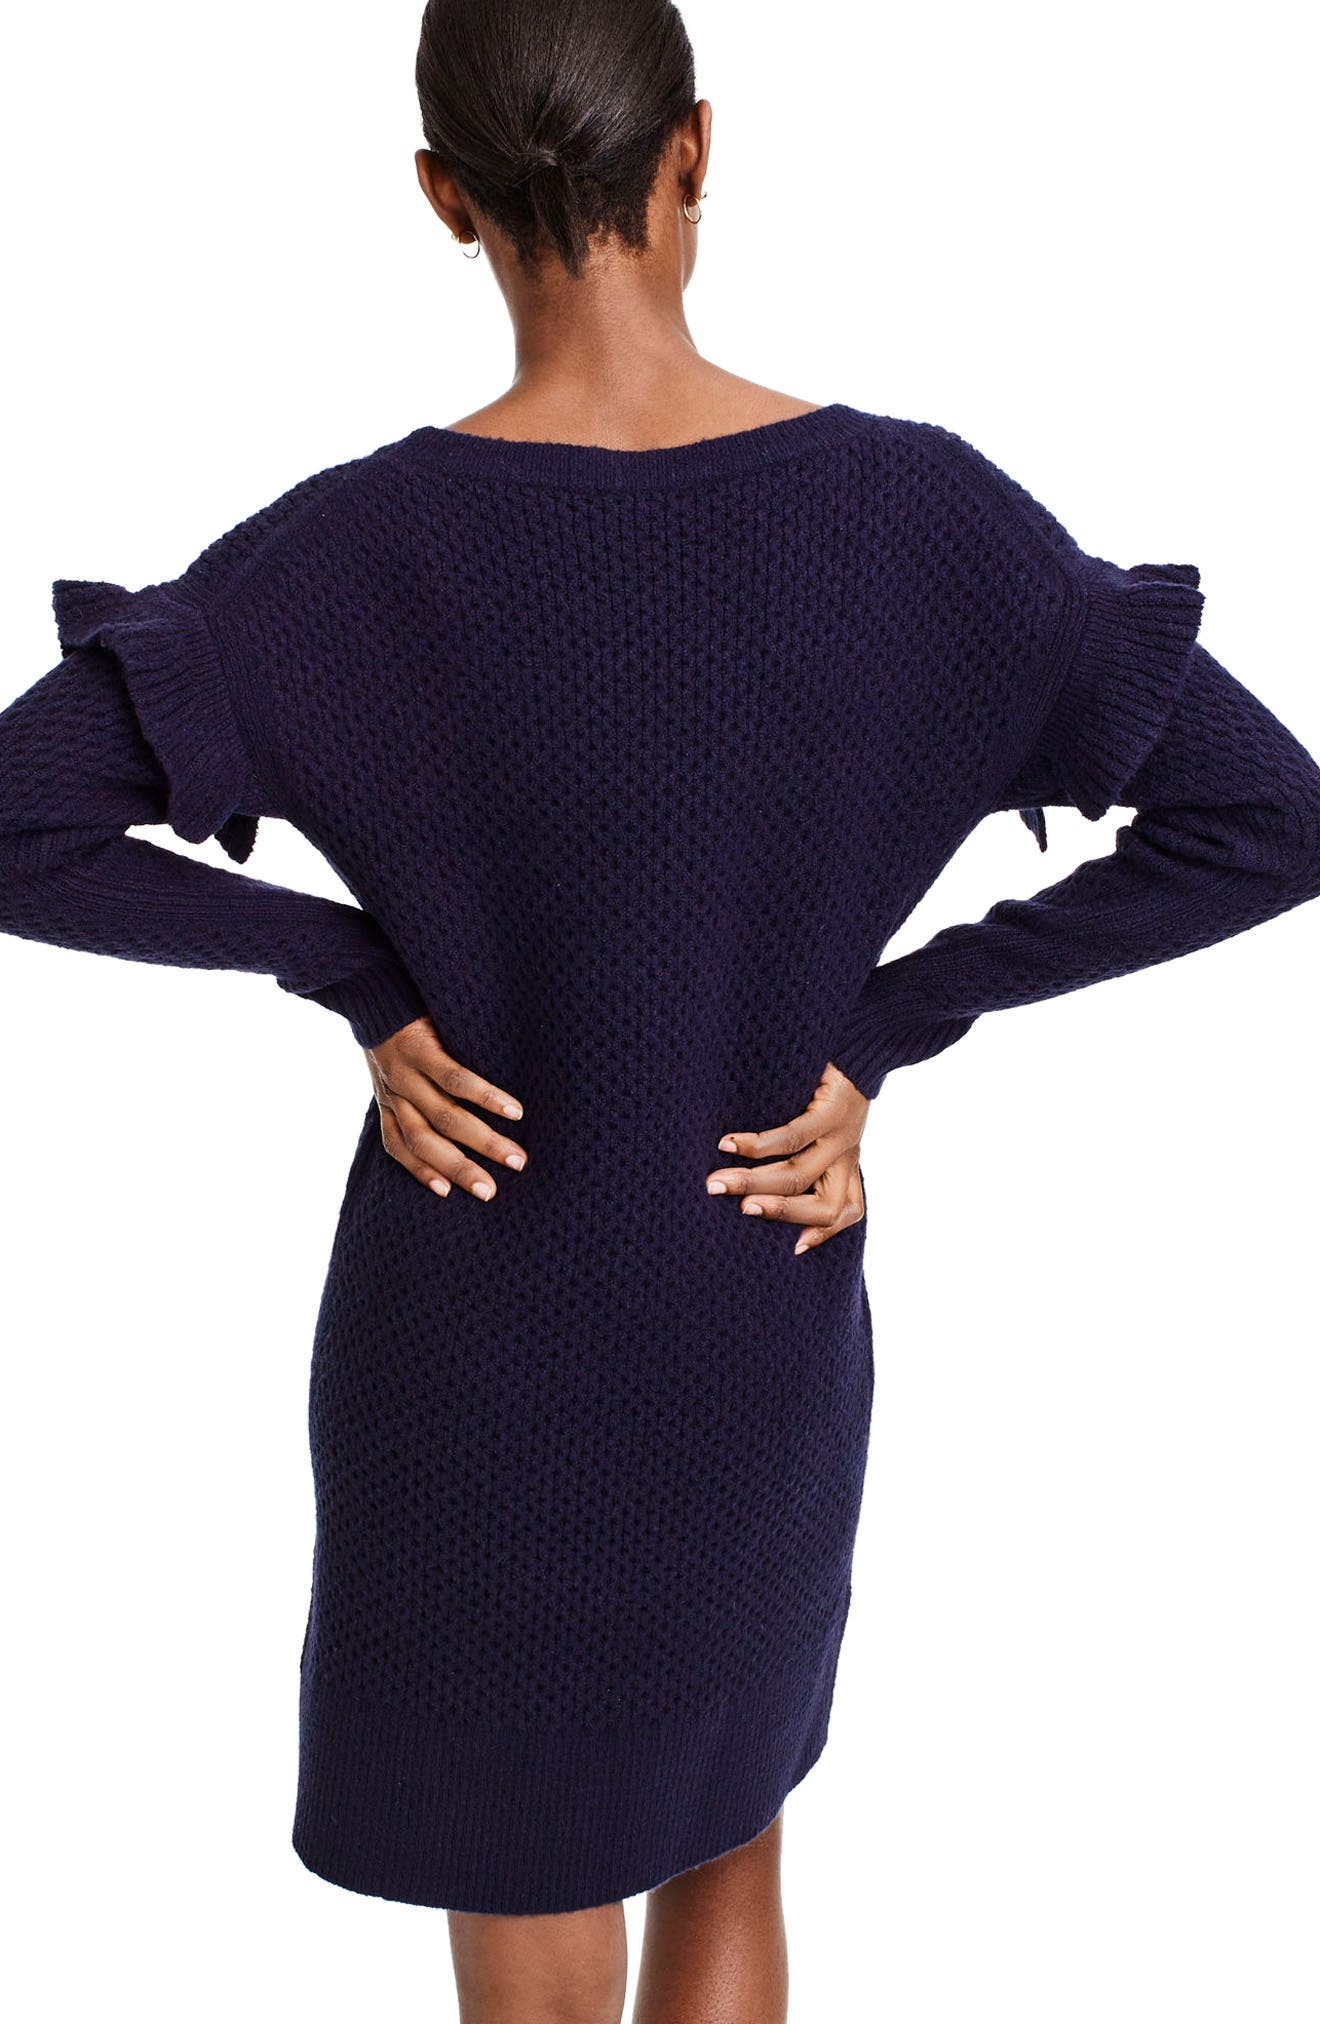 Holden Ruffle Sleeve Cable Knit Sweater Dress,                             Alternate thumbnail 2, color,                             400